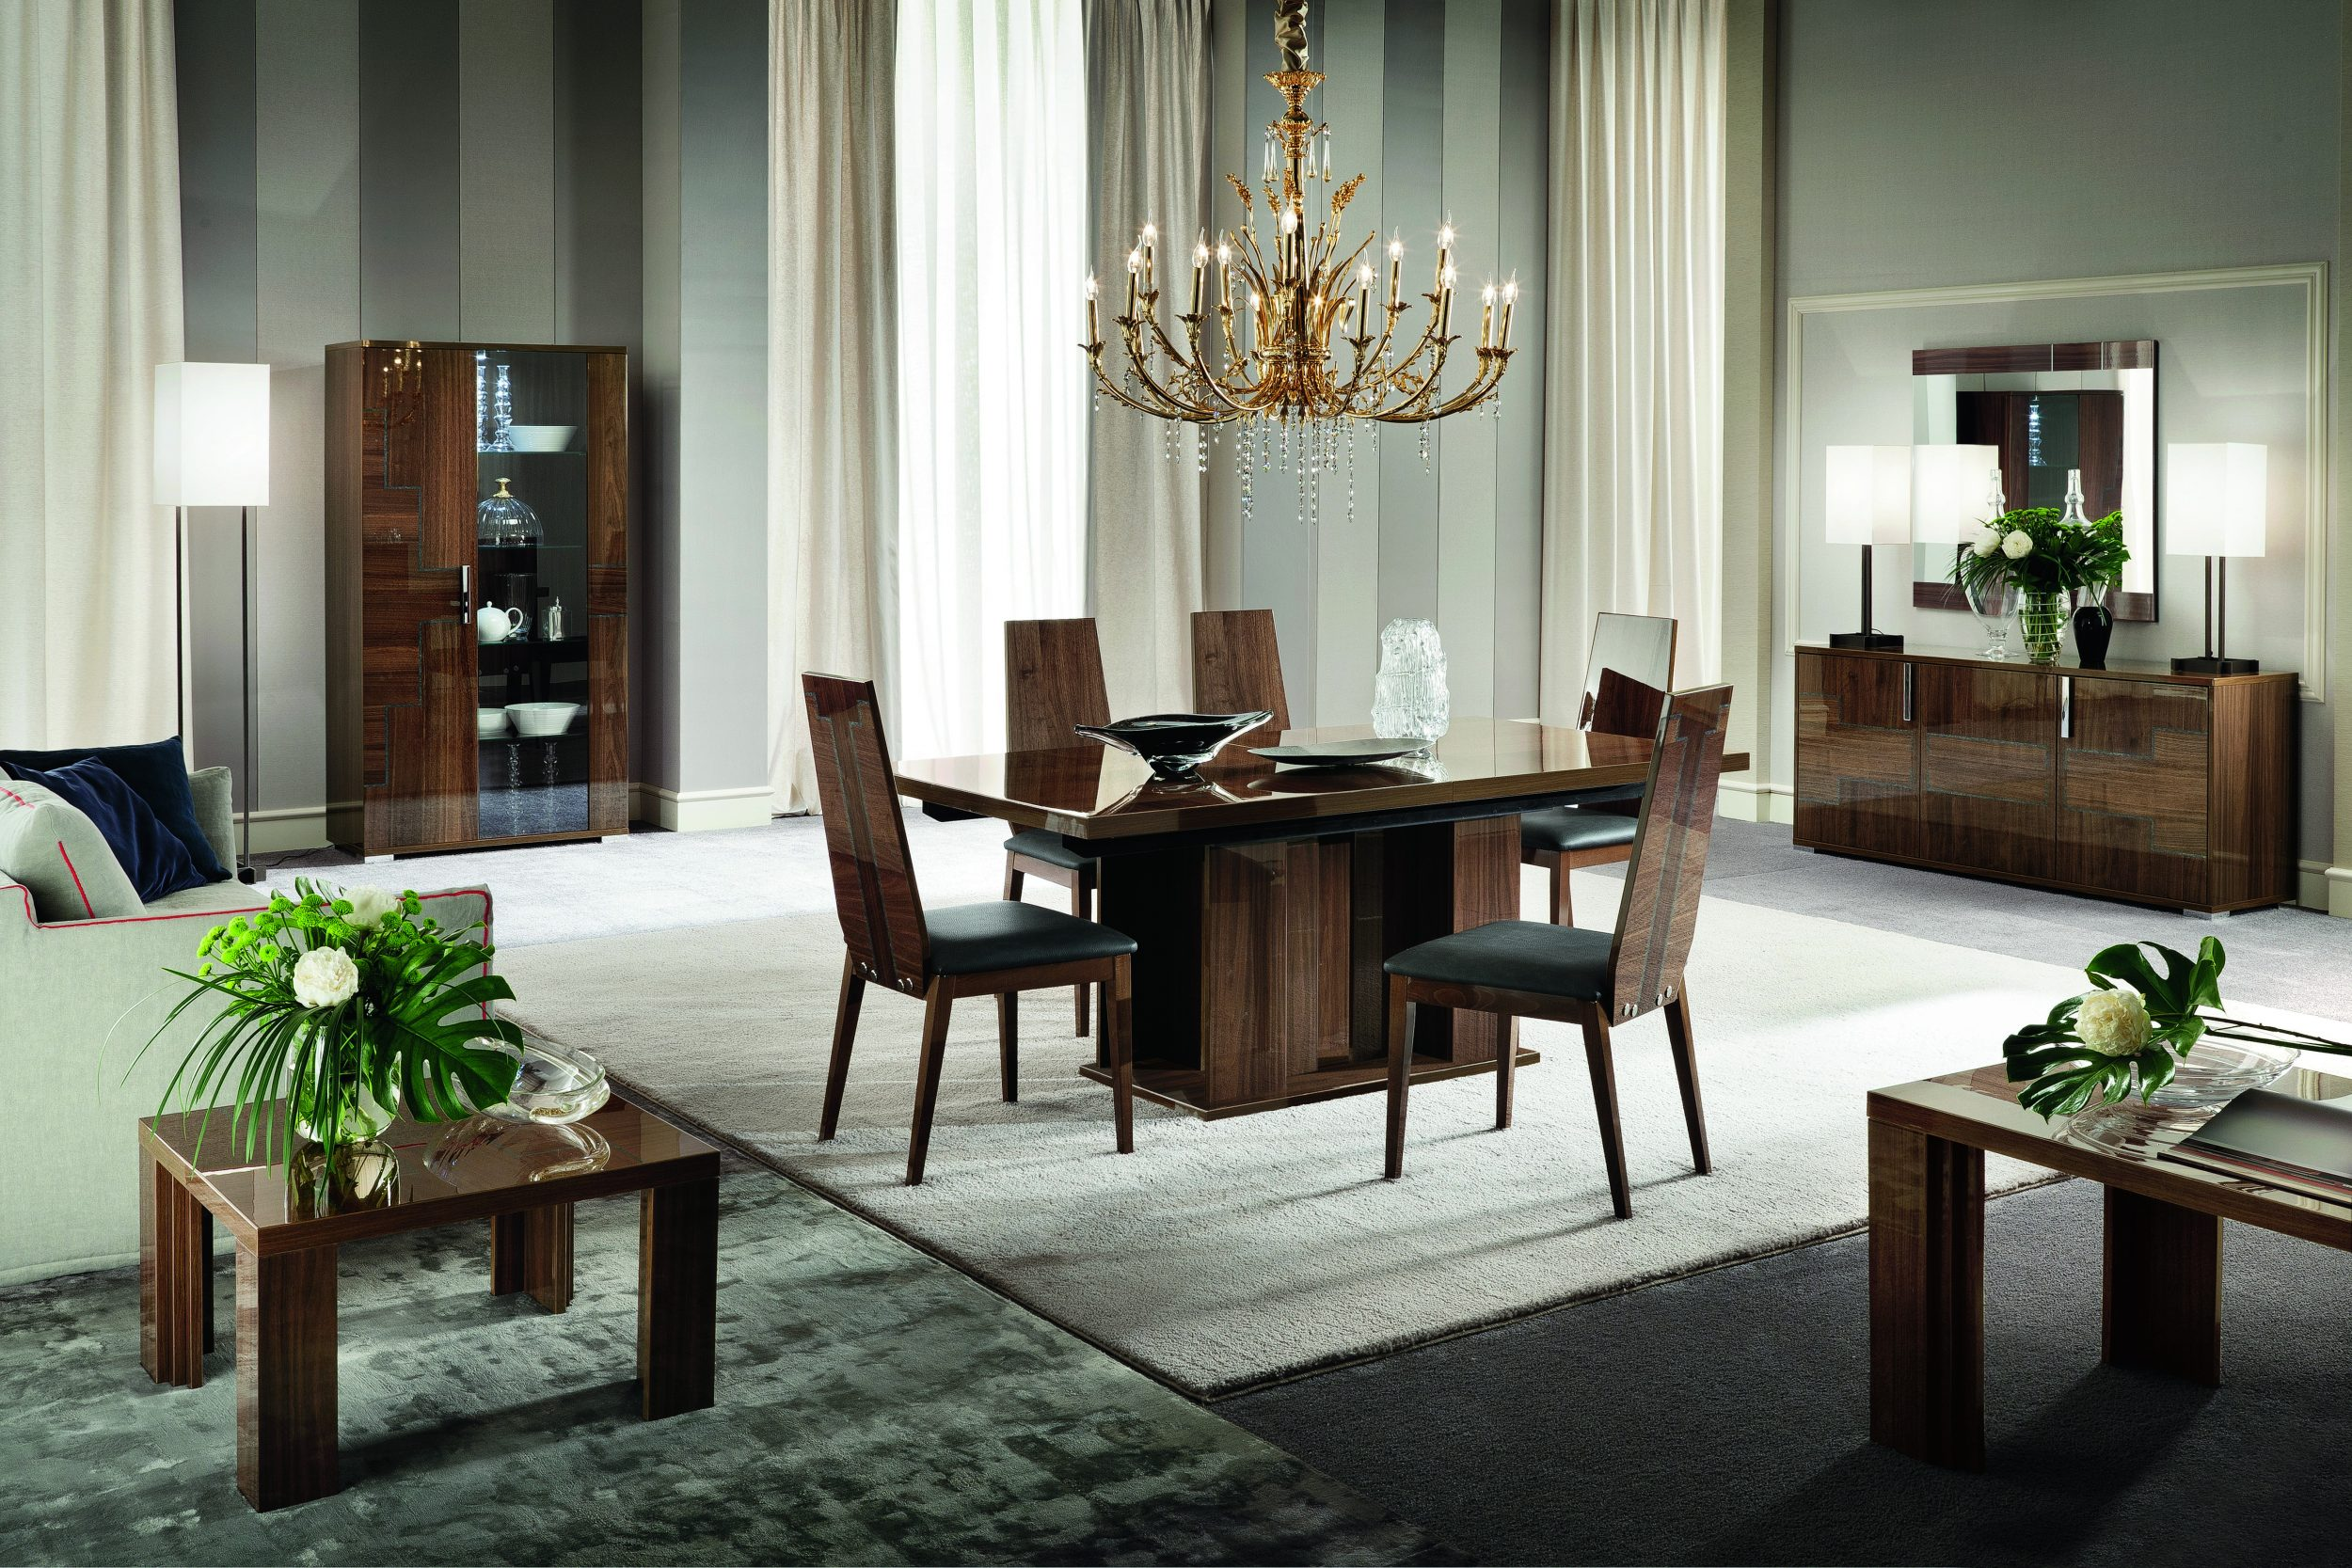 Memphis chair rosner home contemporary and modern italian furniture